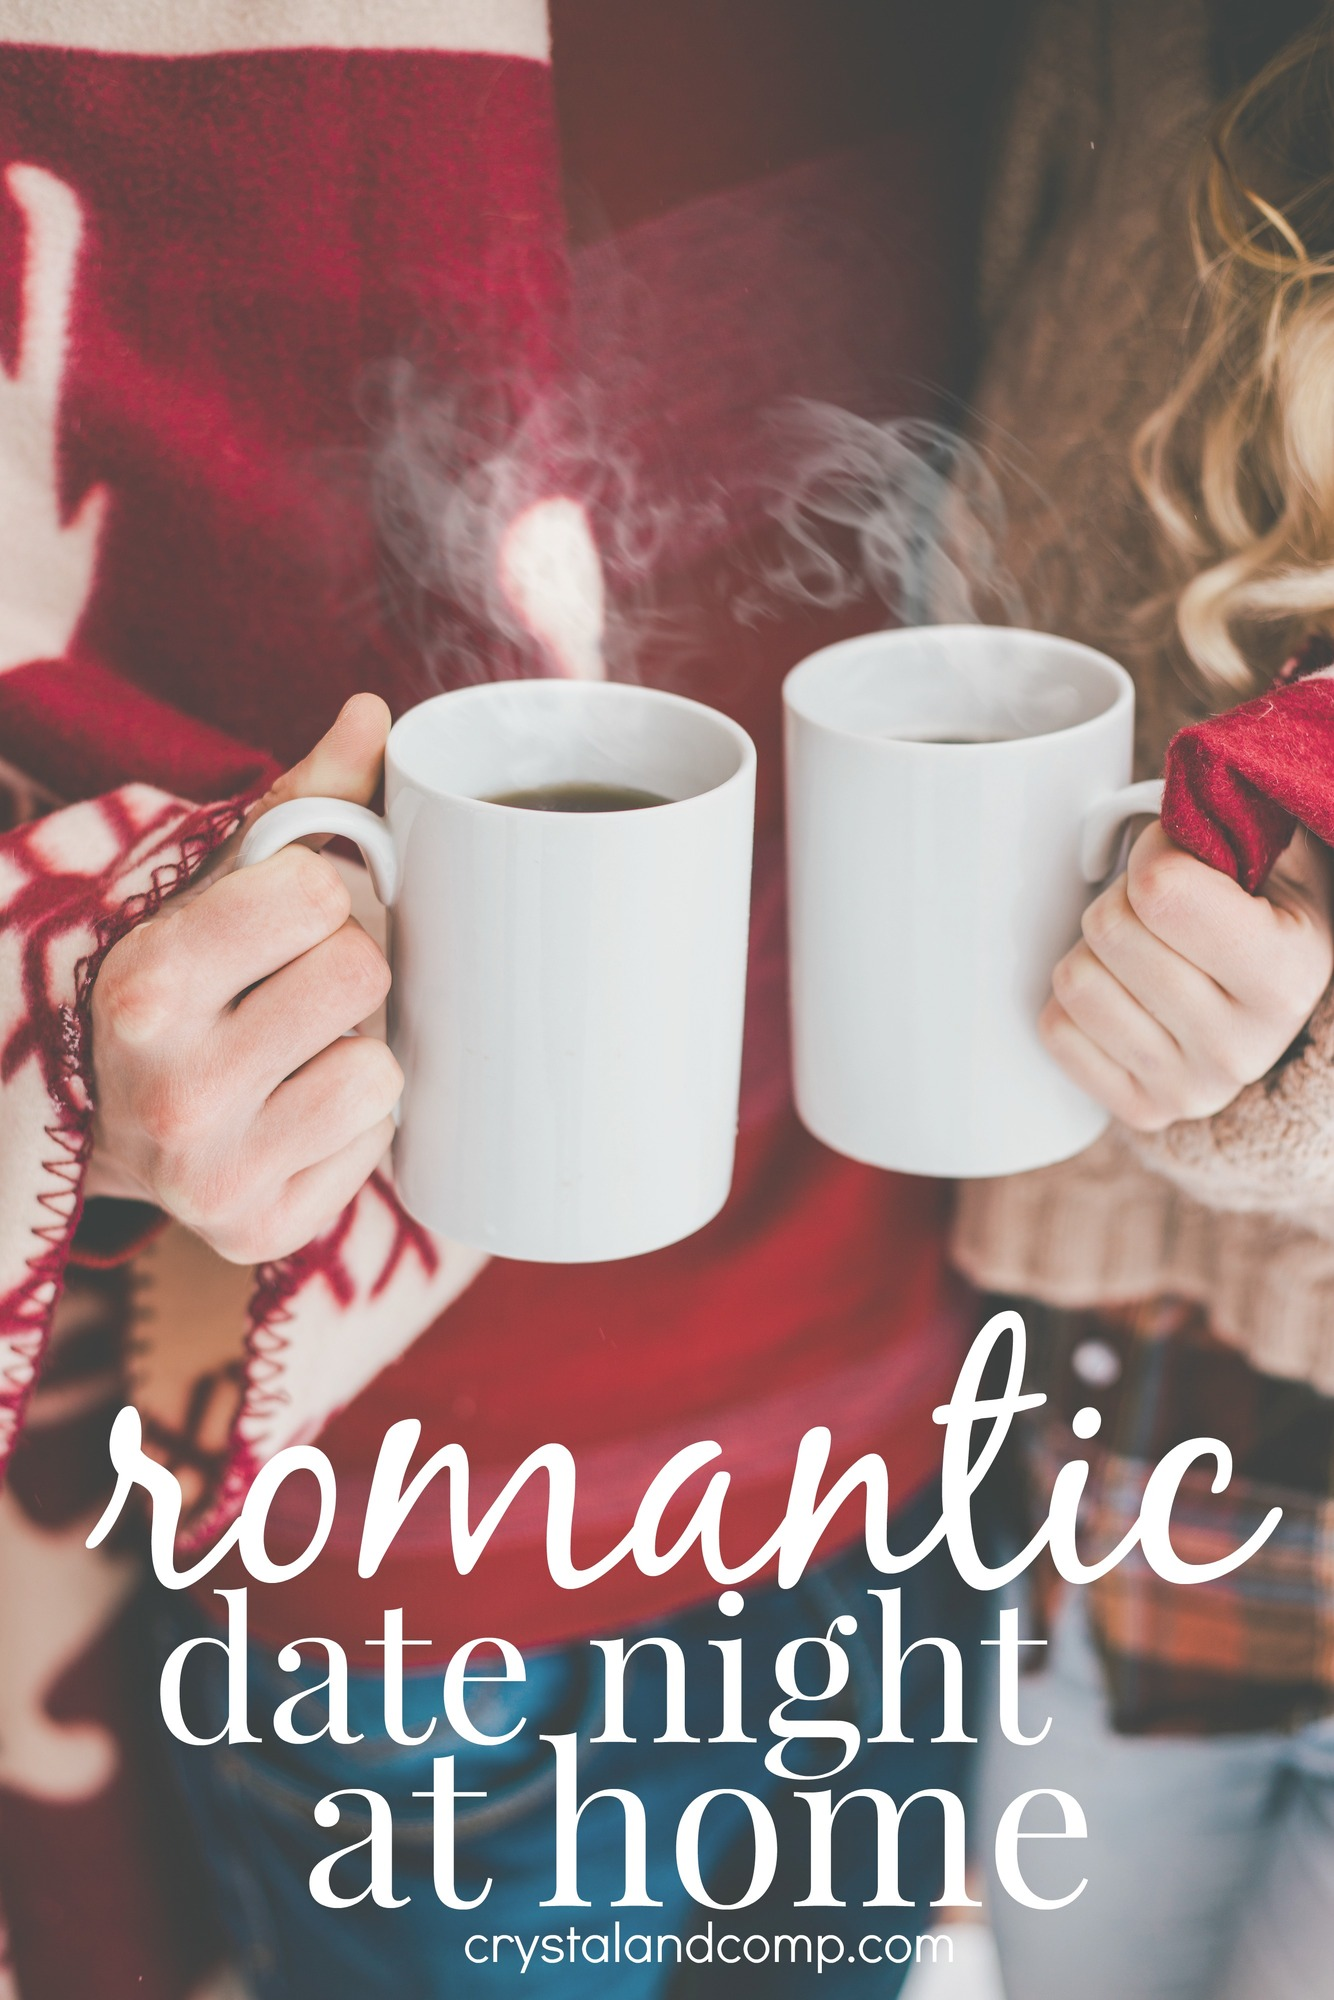 Romantic date ideas for her at home